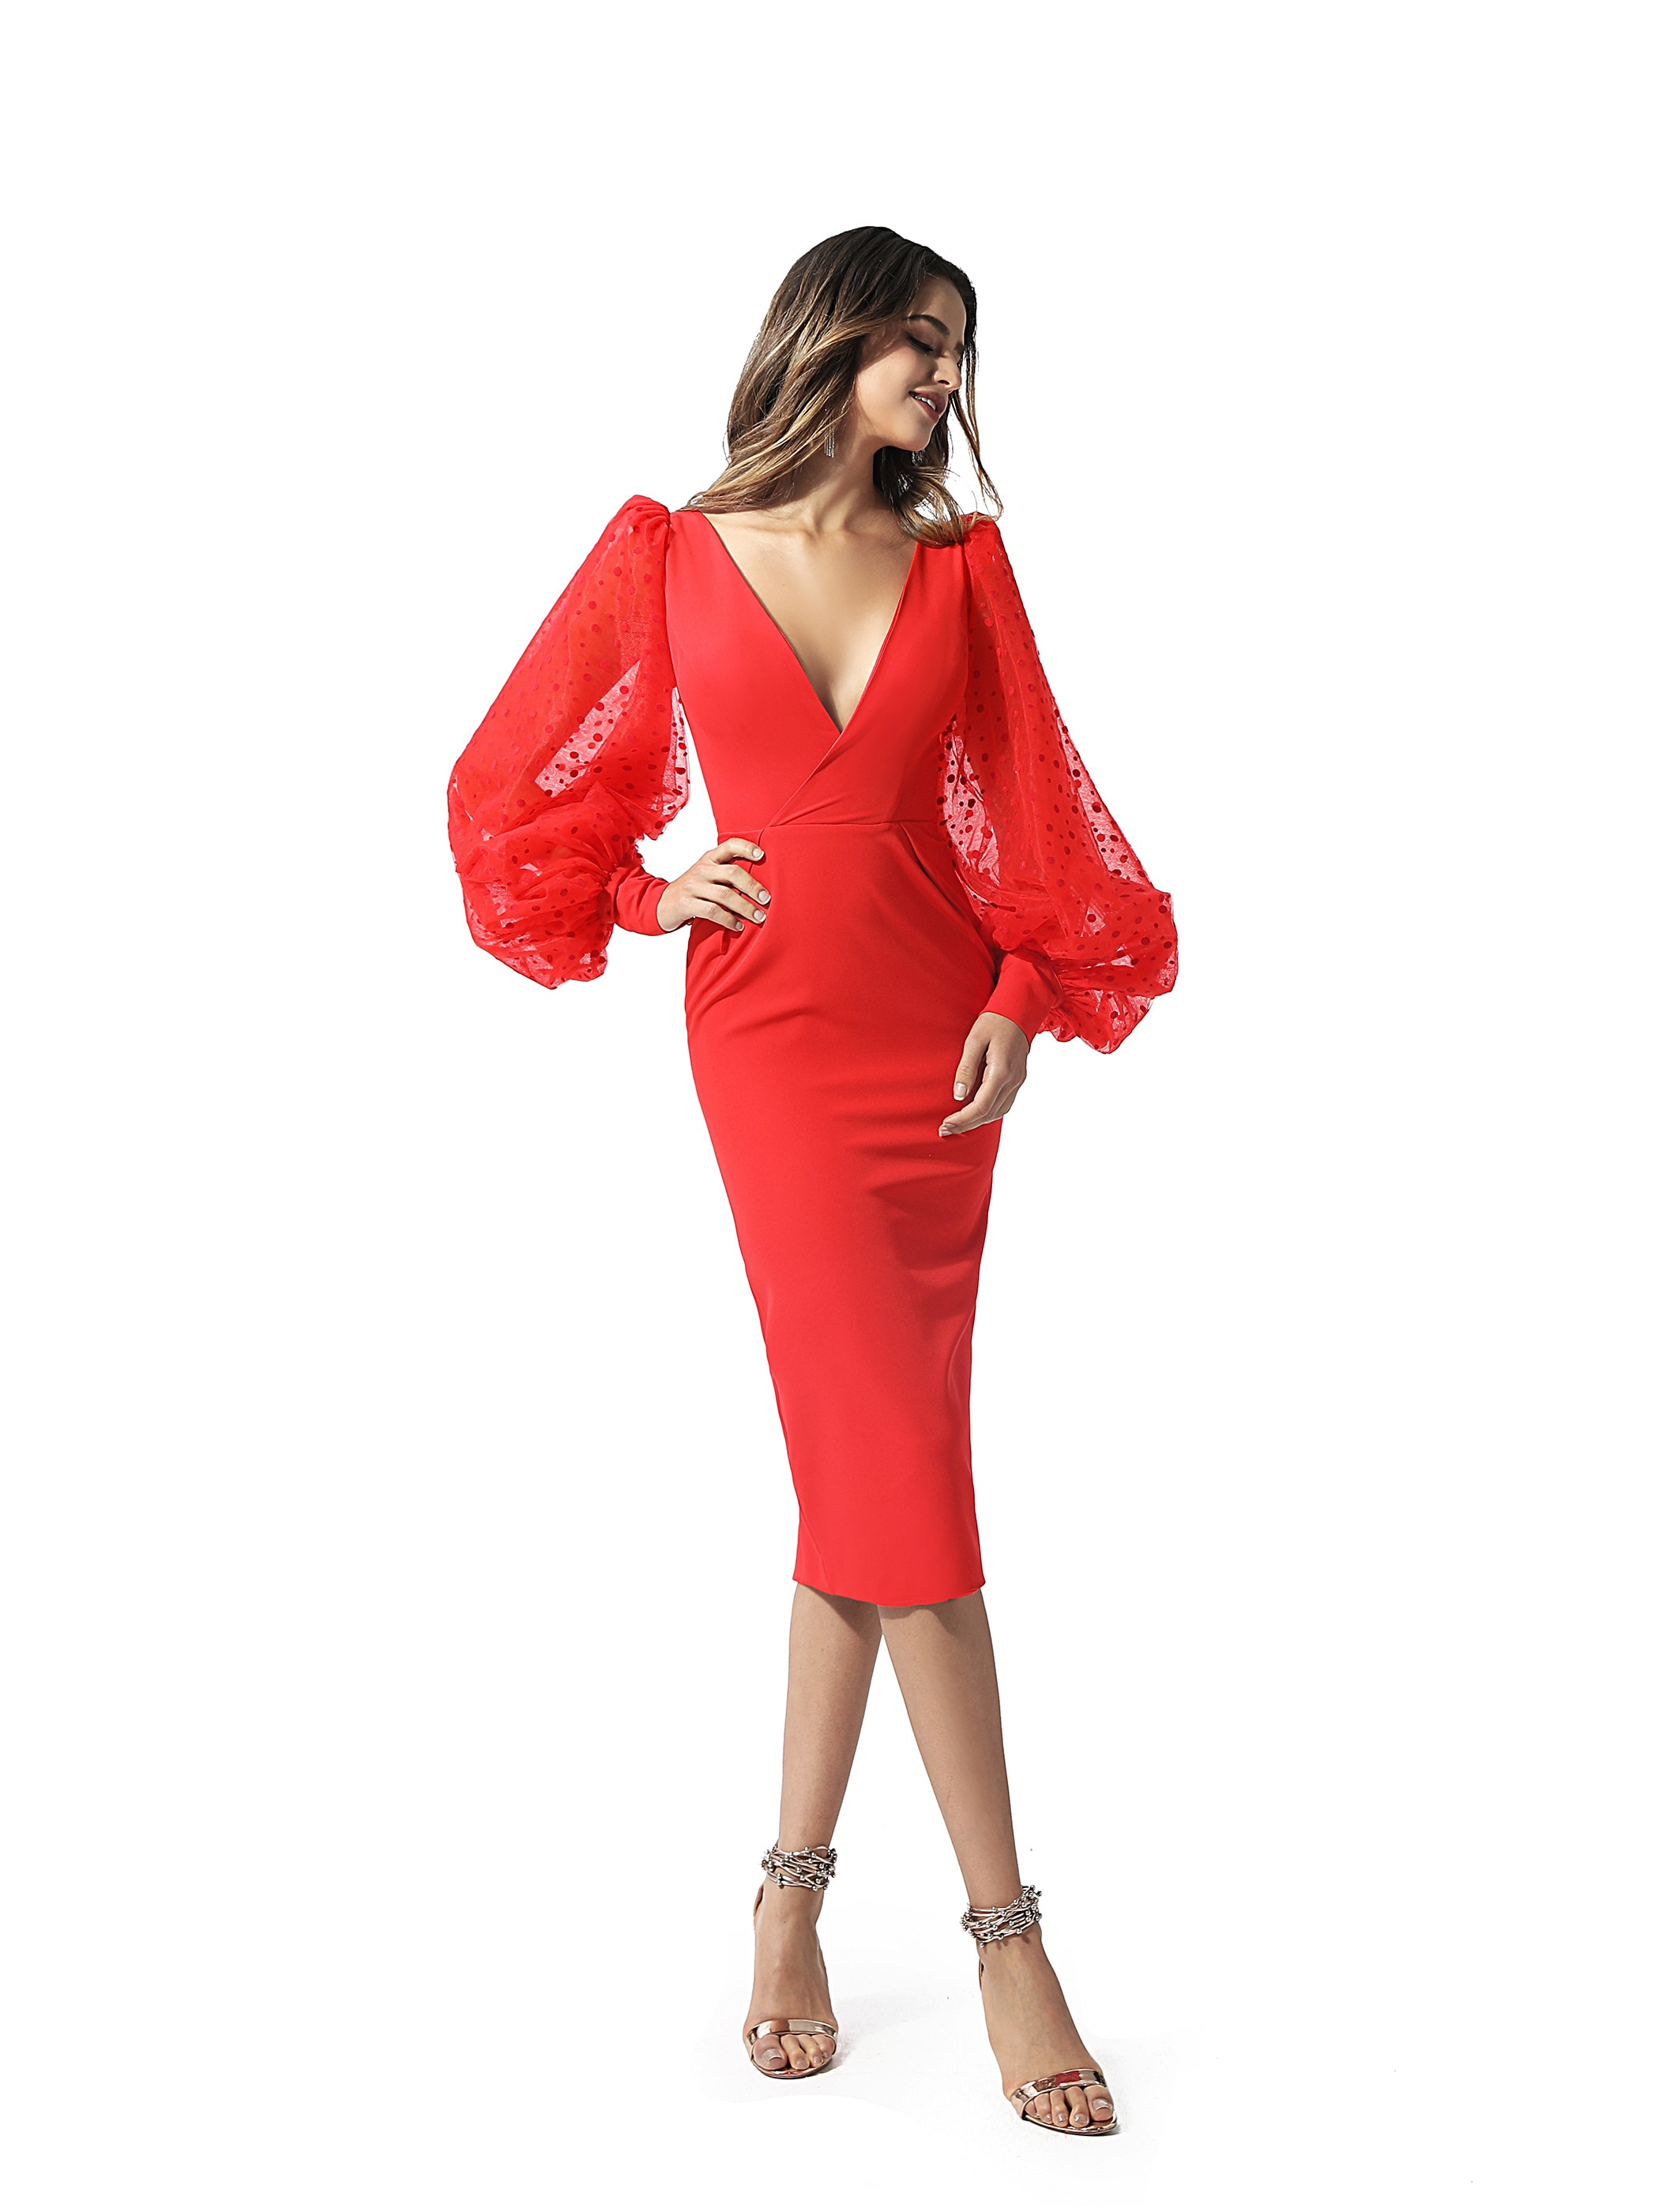 Tanpell Vintage Red V-Neck Cocktail Dress Lace Lantern Long Sleeves Knee-Length Ladies Sexy Party Custom Cocktail Dress 2020 фото